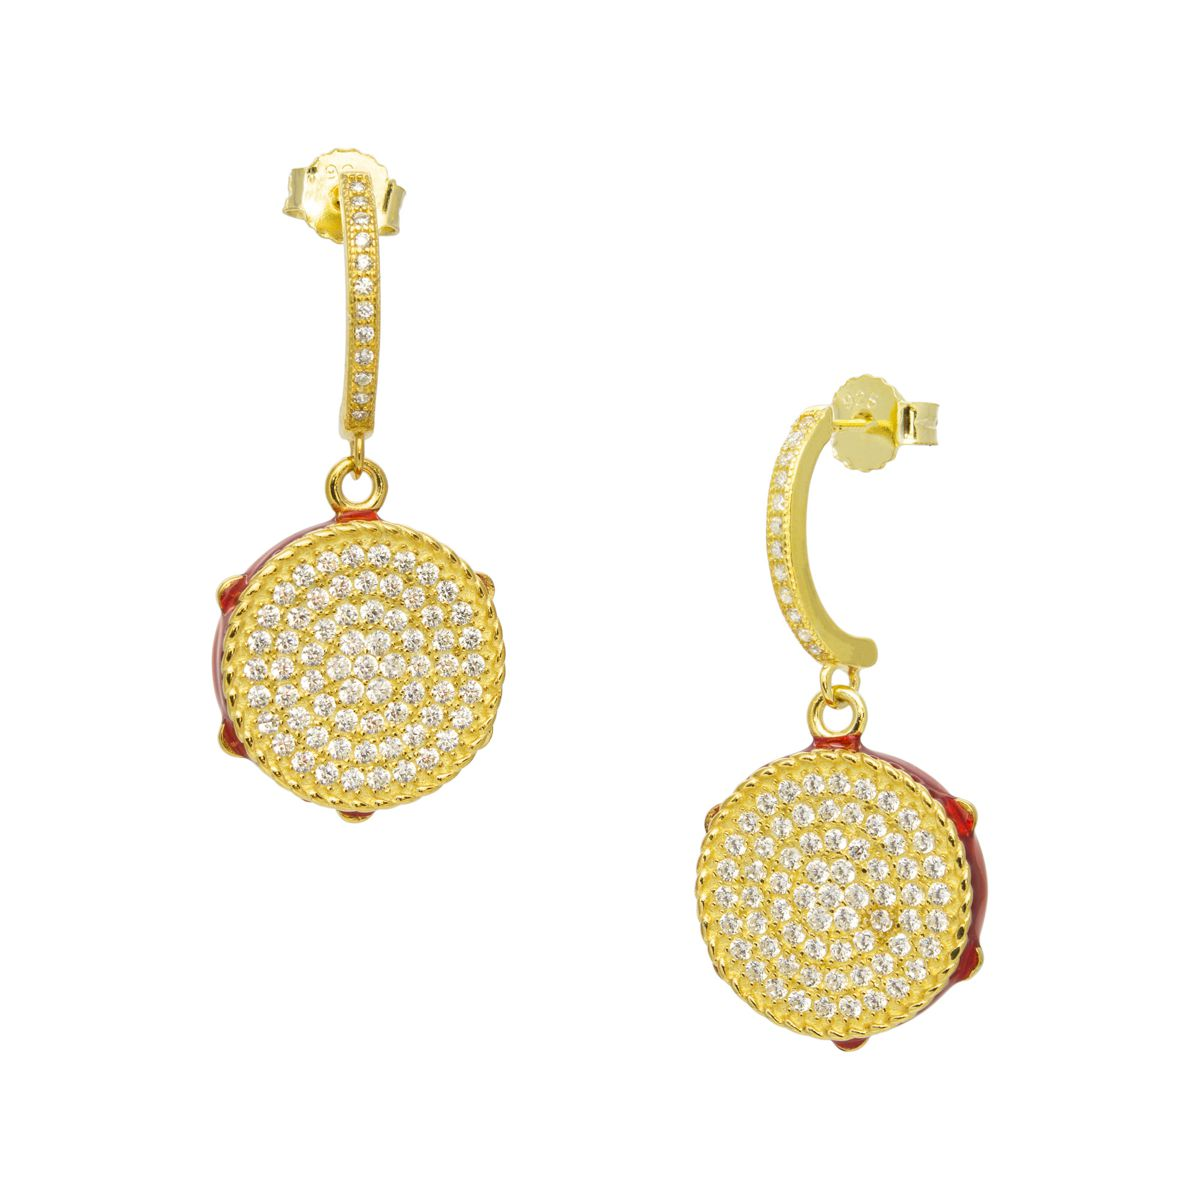 DRUM PENDANT GOLD EARRINGS Gold M'AMI SICILY JEWELS